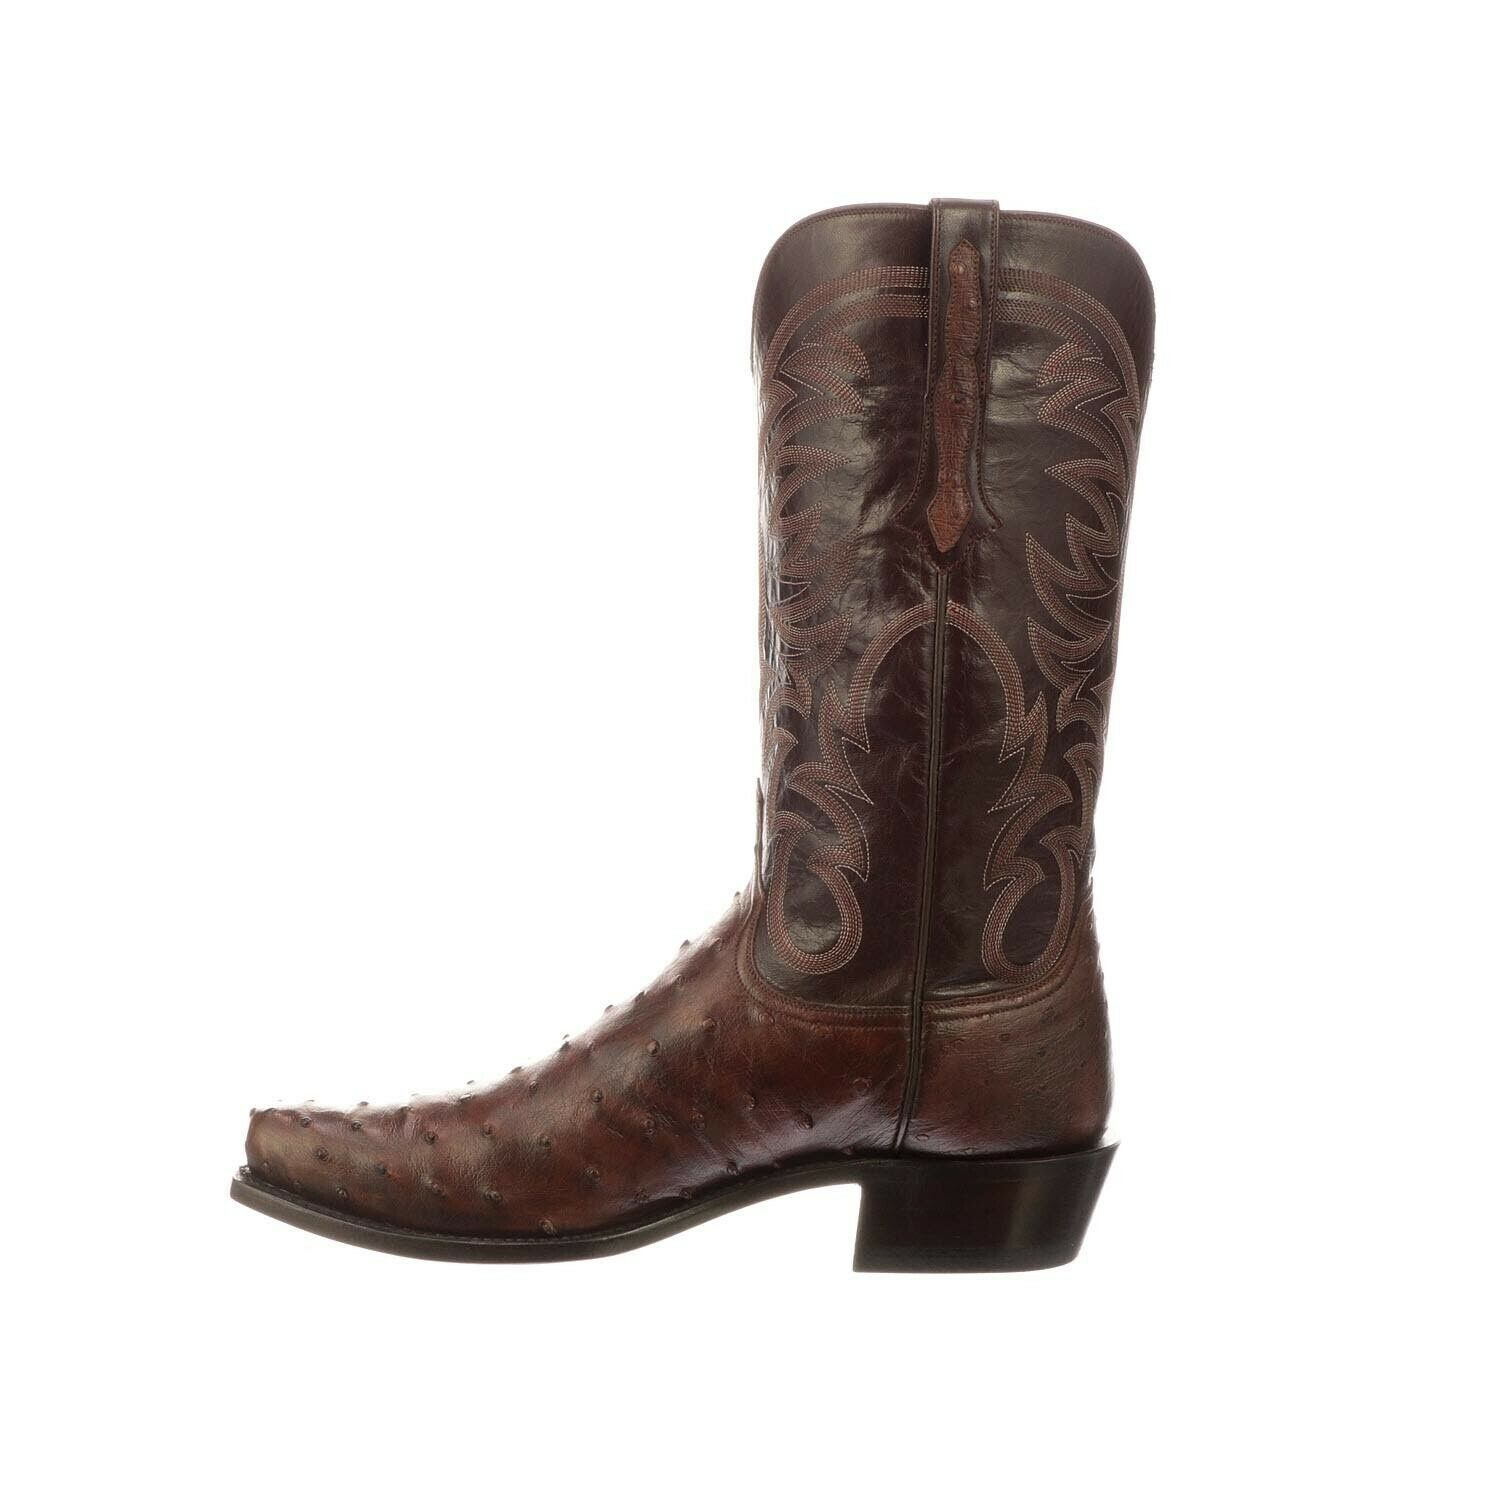 Handmade Men's Leather Brown Ostrich Print Cowboy Mexican Western Hunter Boots